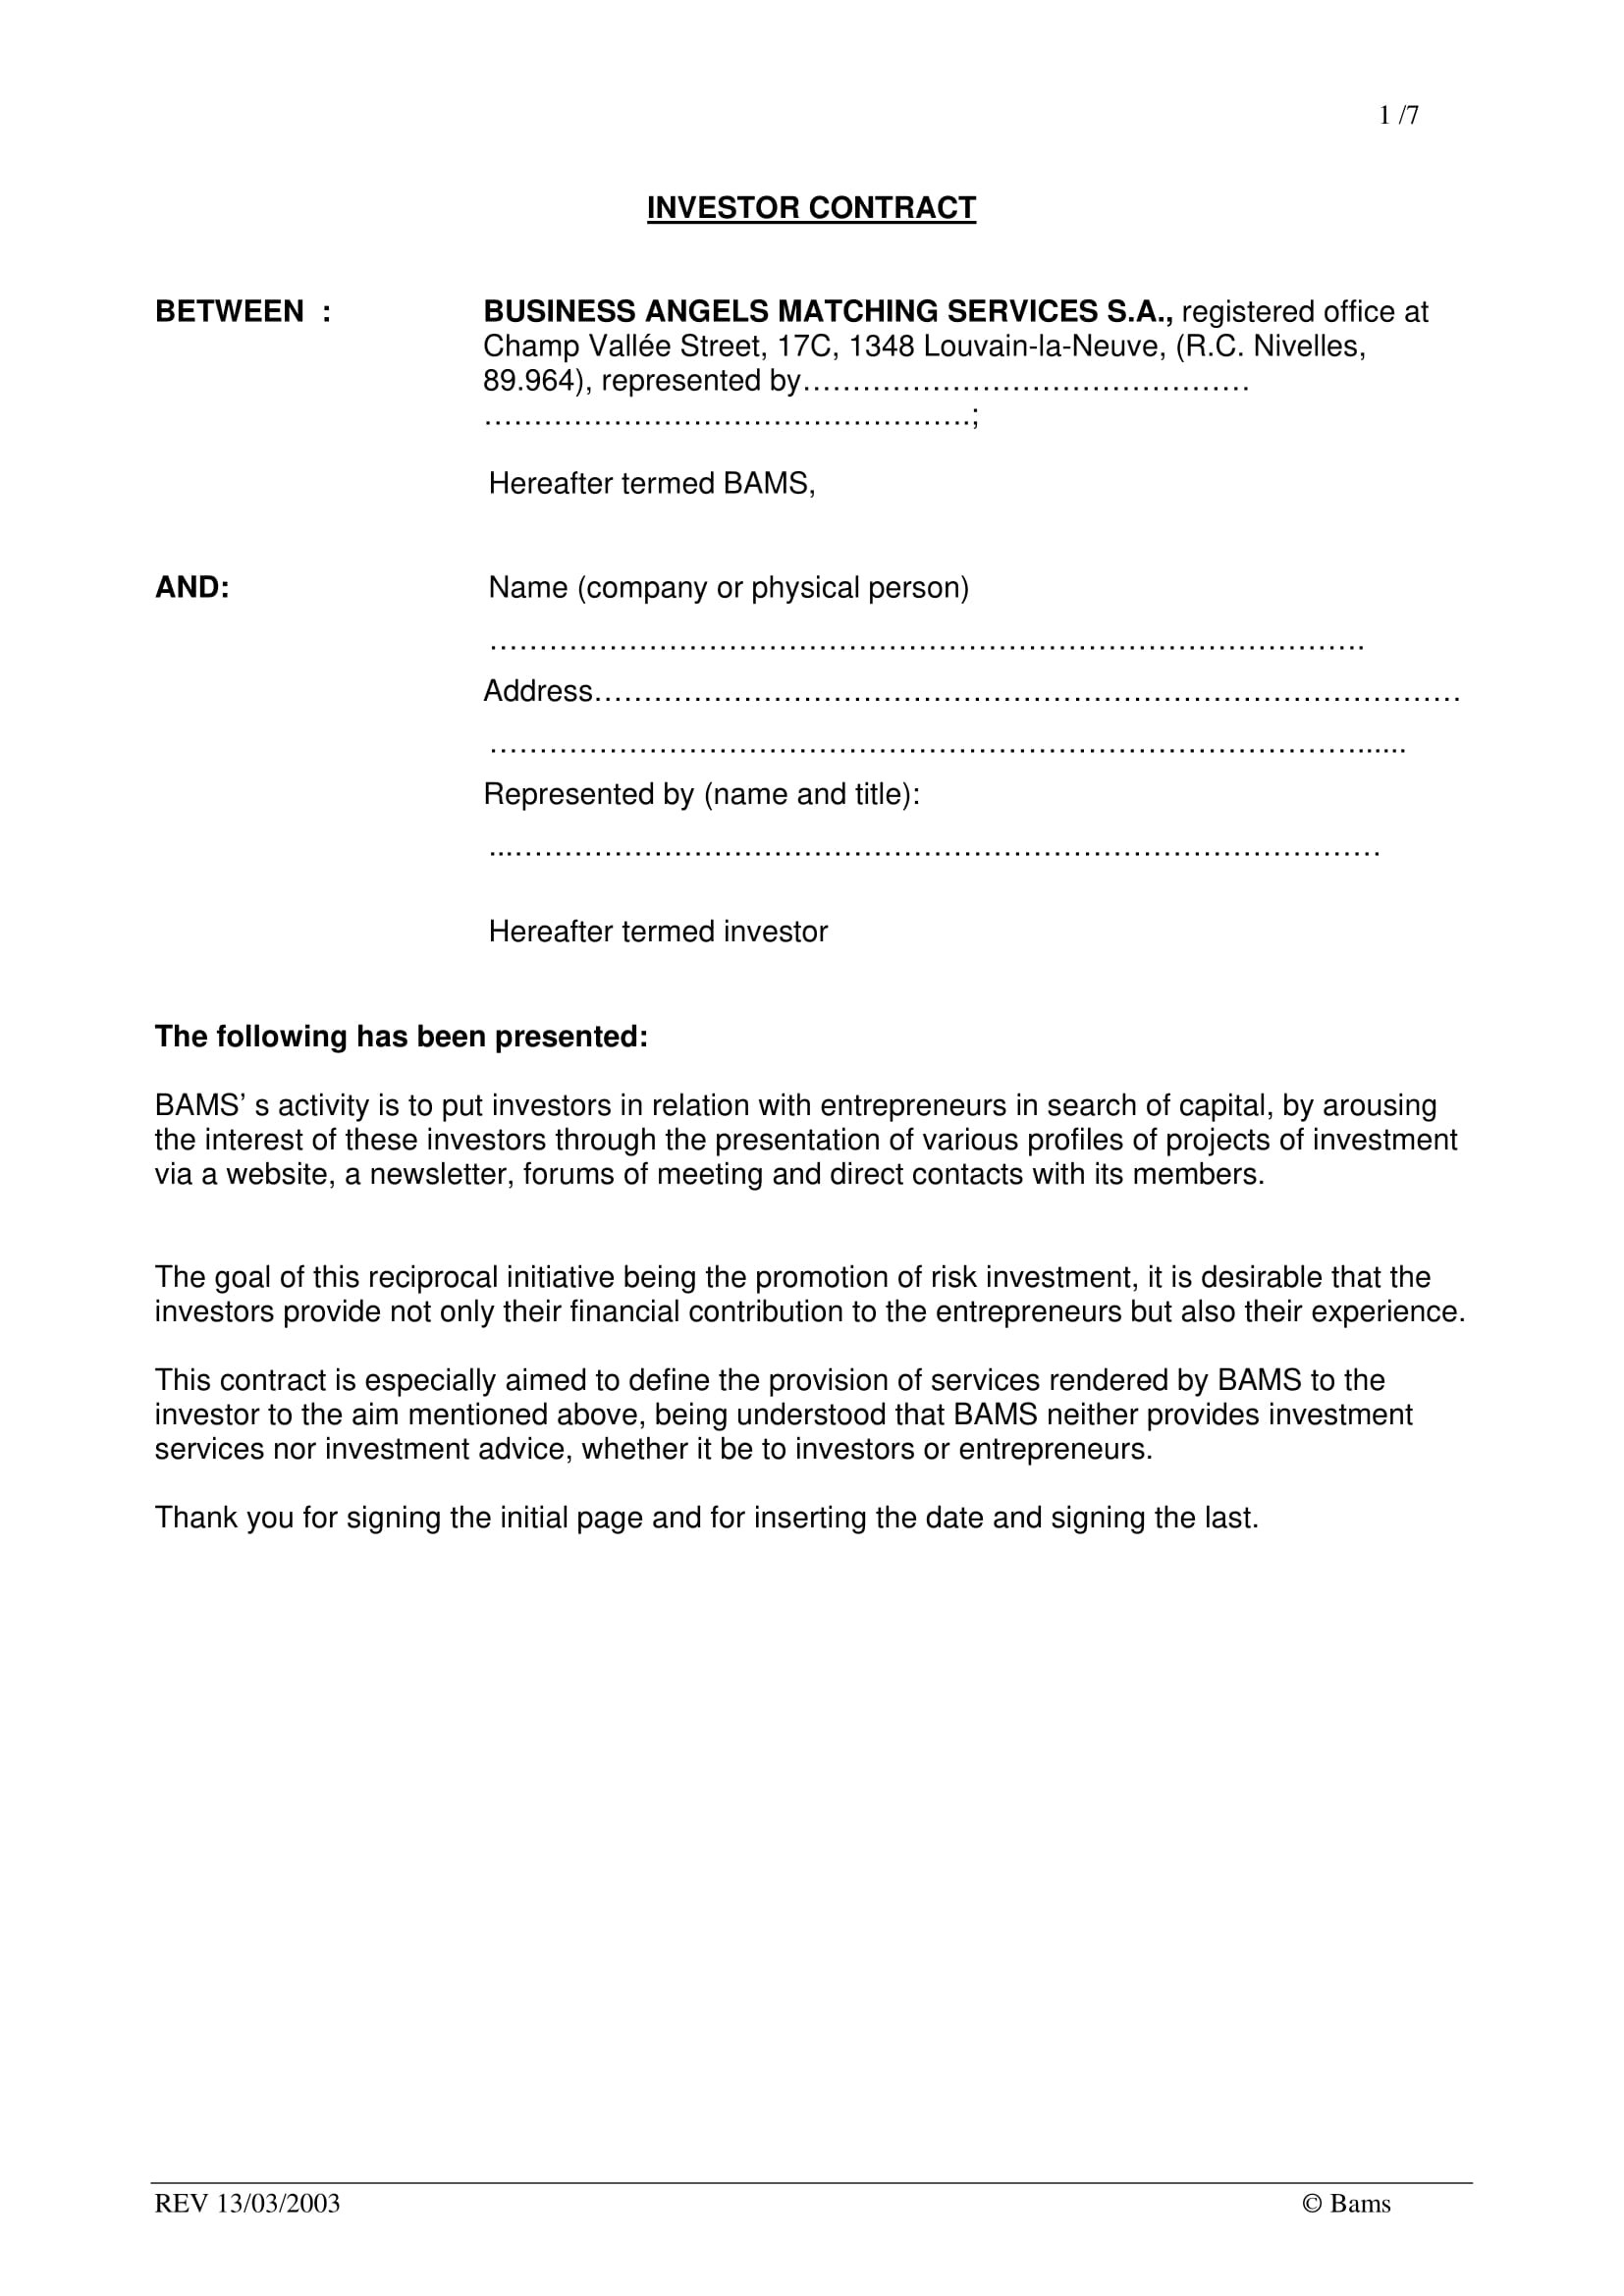 business contract template  9+ Personal Investment Agreement Examples - PDF | Examples - business contract template